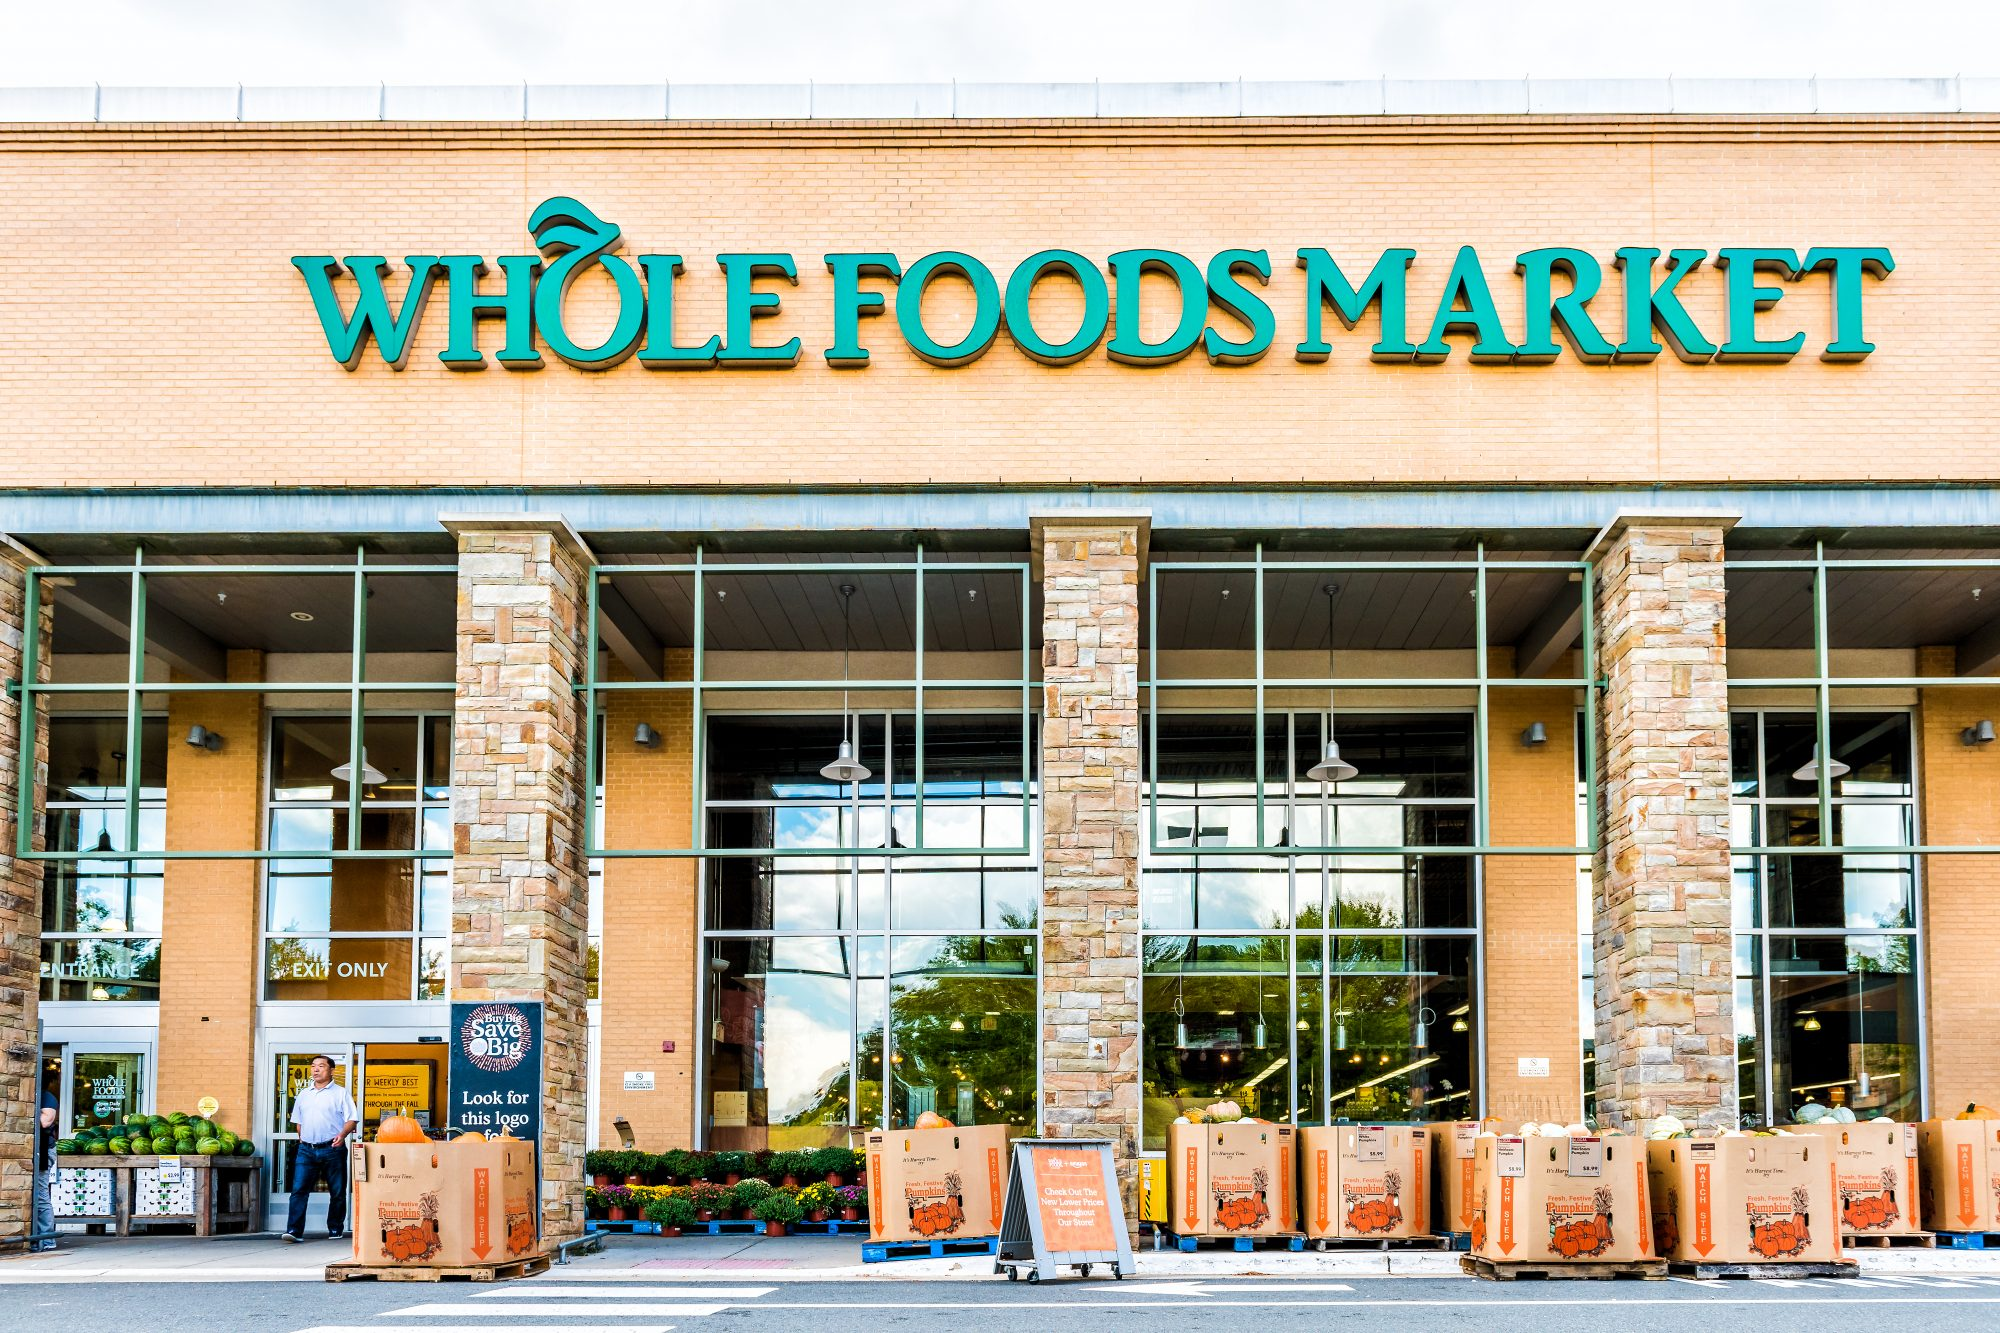 getty Whole Foods Fall Products image